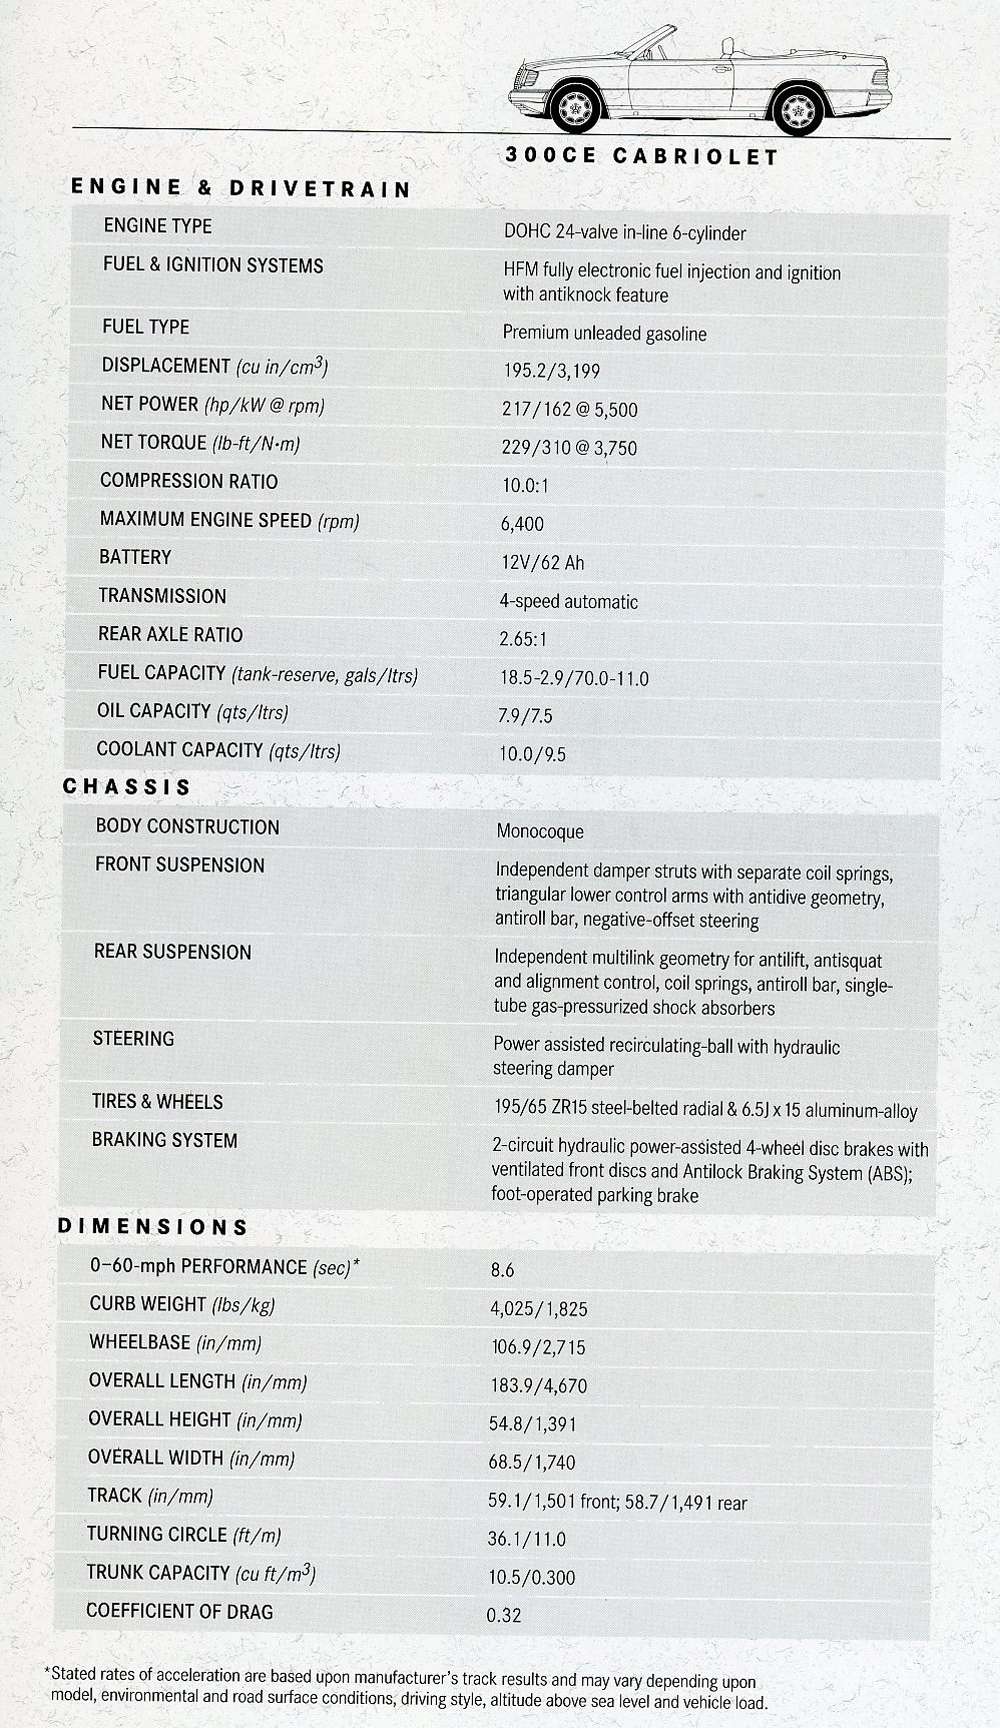 Specifications page as printed in the original 1993 U.S. market 300CE Cabrio brochure.  (Photo credit: Daimler A.G.)